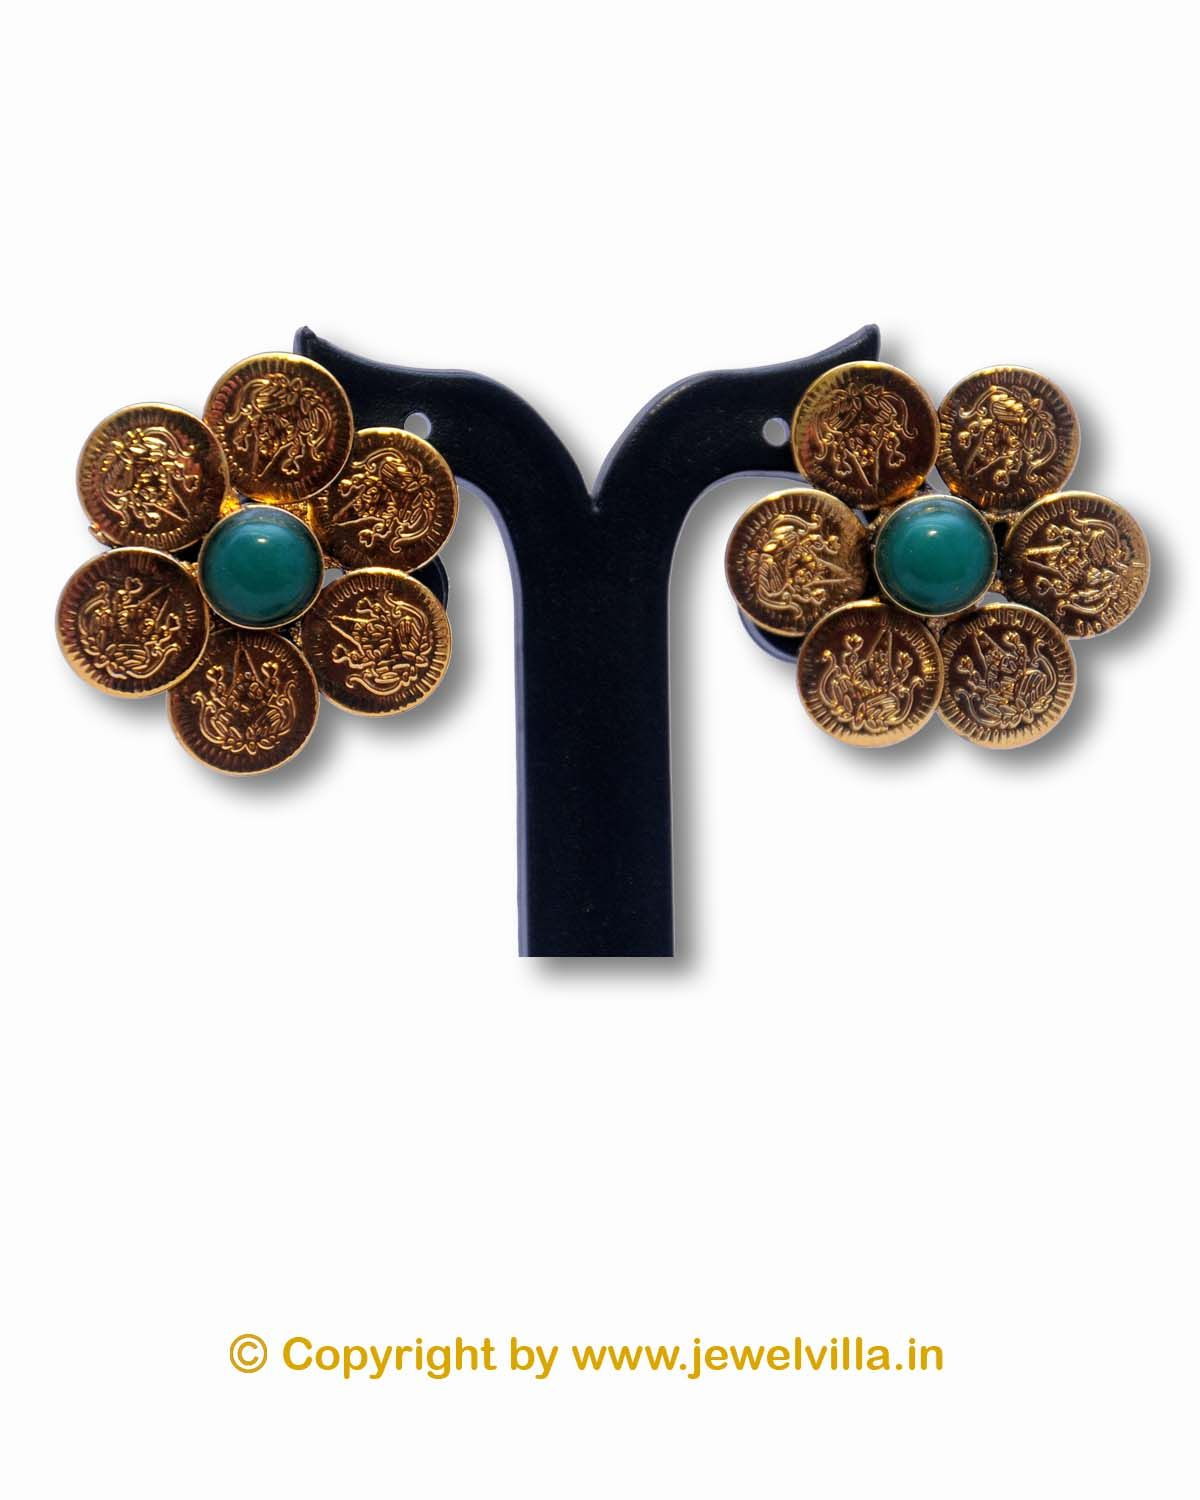 We are offering to our valued customers a fine range of earring.This is very famous Jewellery design from Kolhapur.Ethnic inspires jewellery with a contemporary edge. Its intricate design and exclusive styling will give a unique touch to your look.